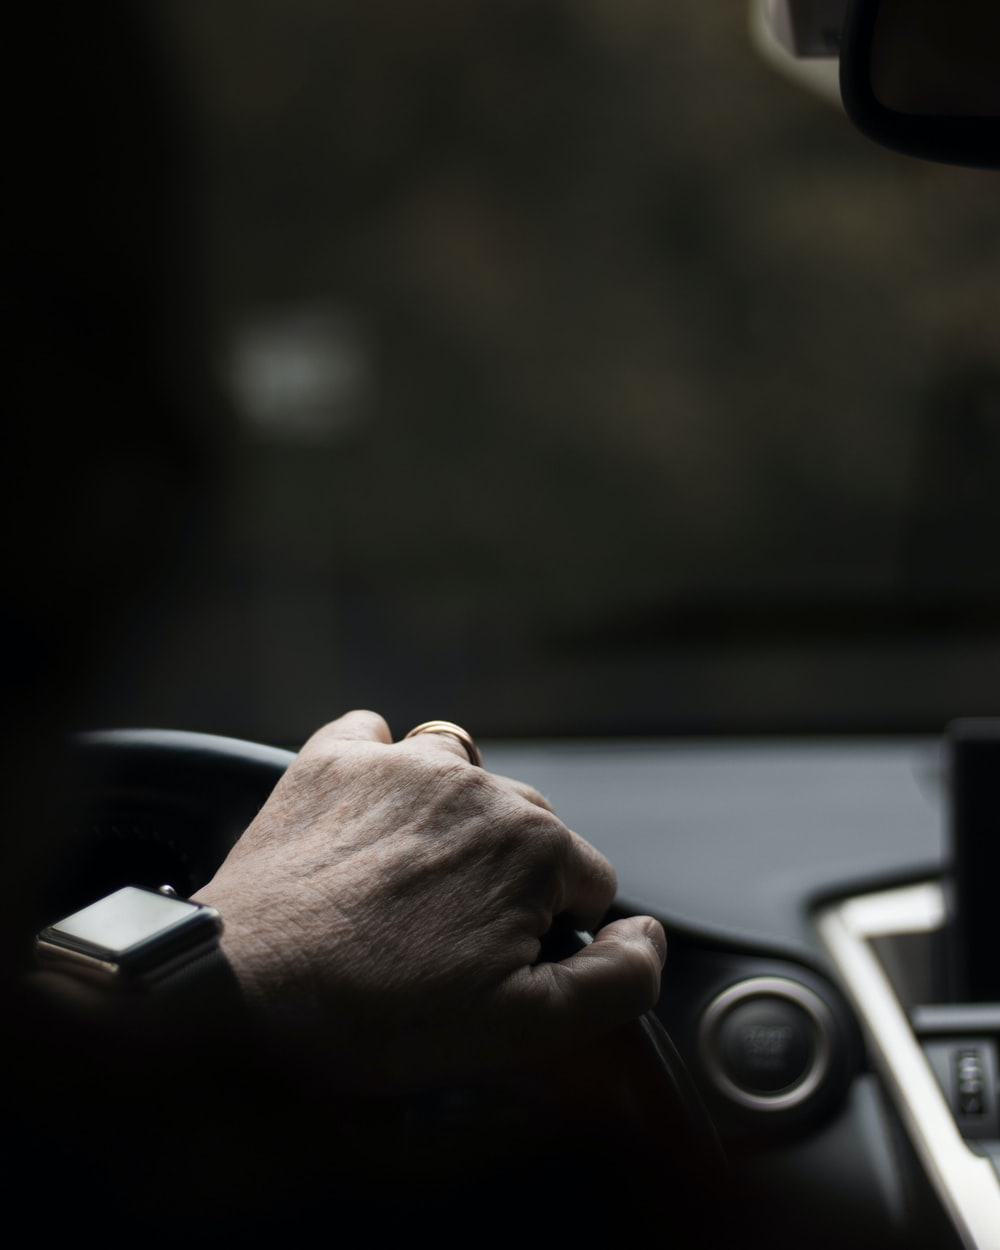 person gripping on steering wheel